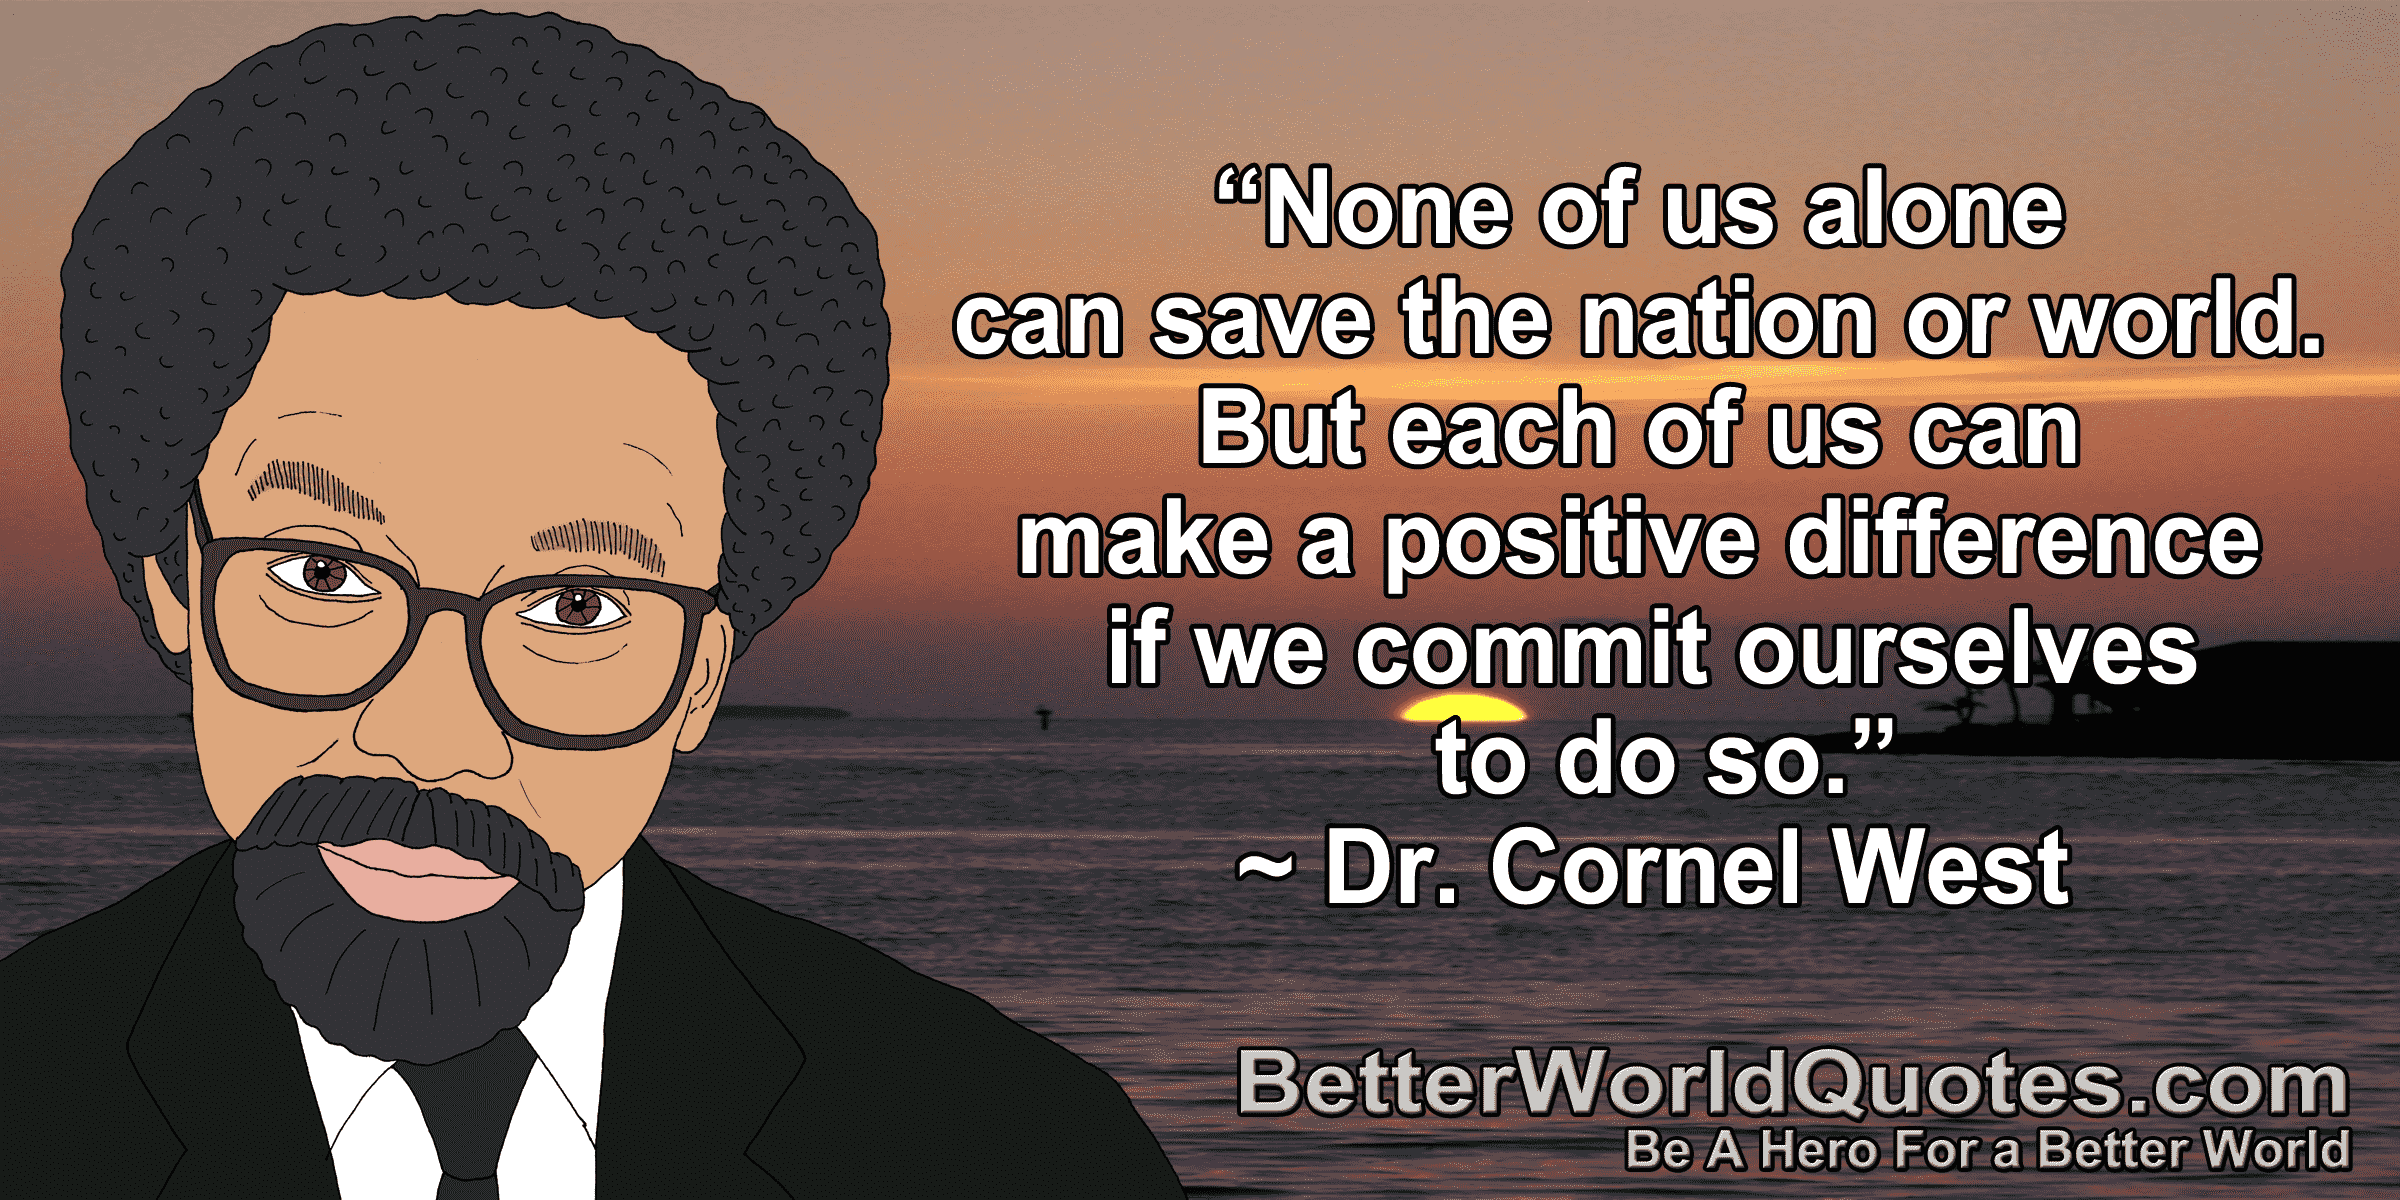 BWQ-CornelWest-MakeADifference-min